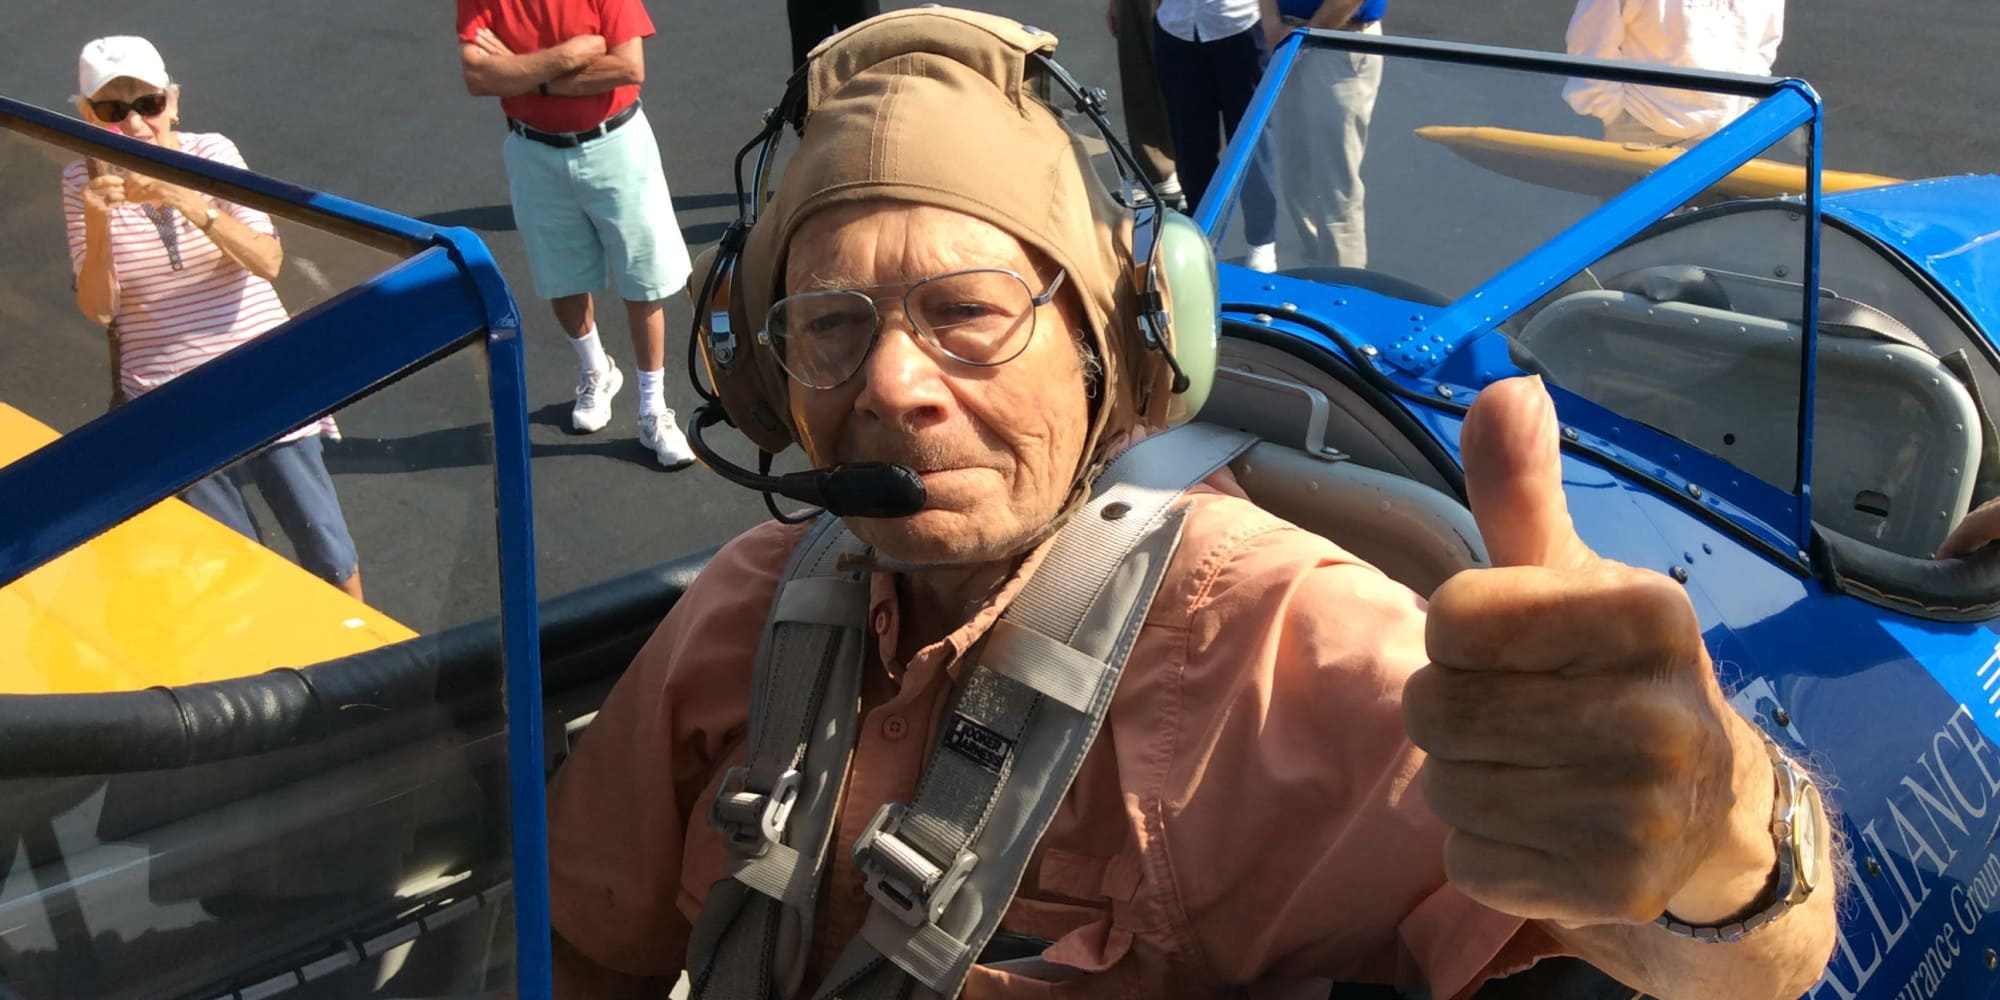 A resident from Southern Pines Gracious Retirement Living in Southern Pines, North Carolina giving a thumbs up from inside an airplane